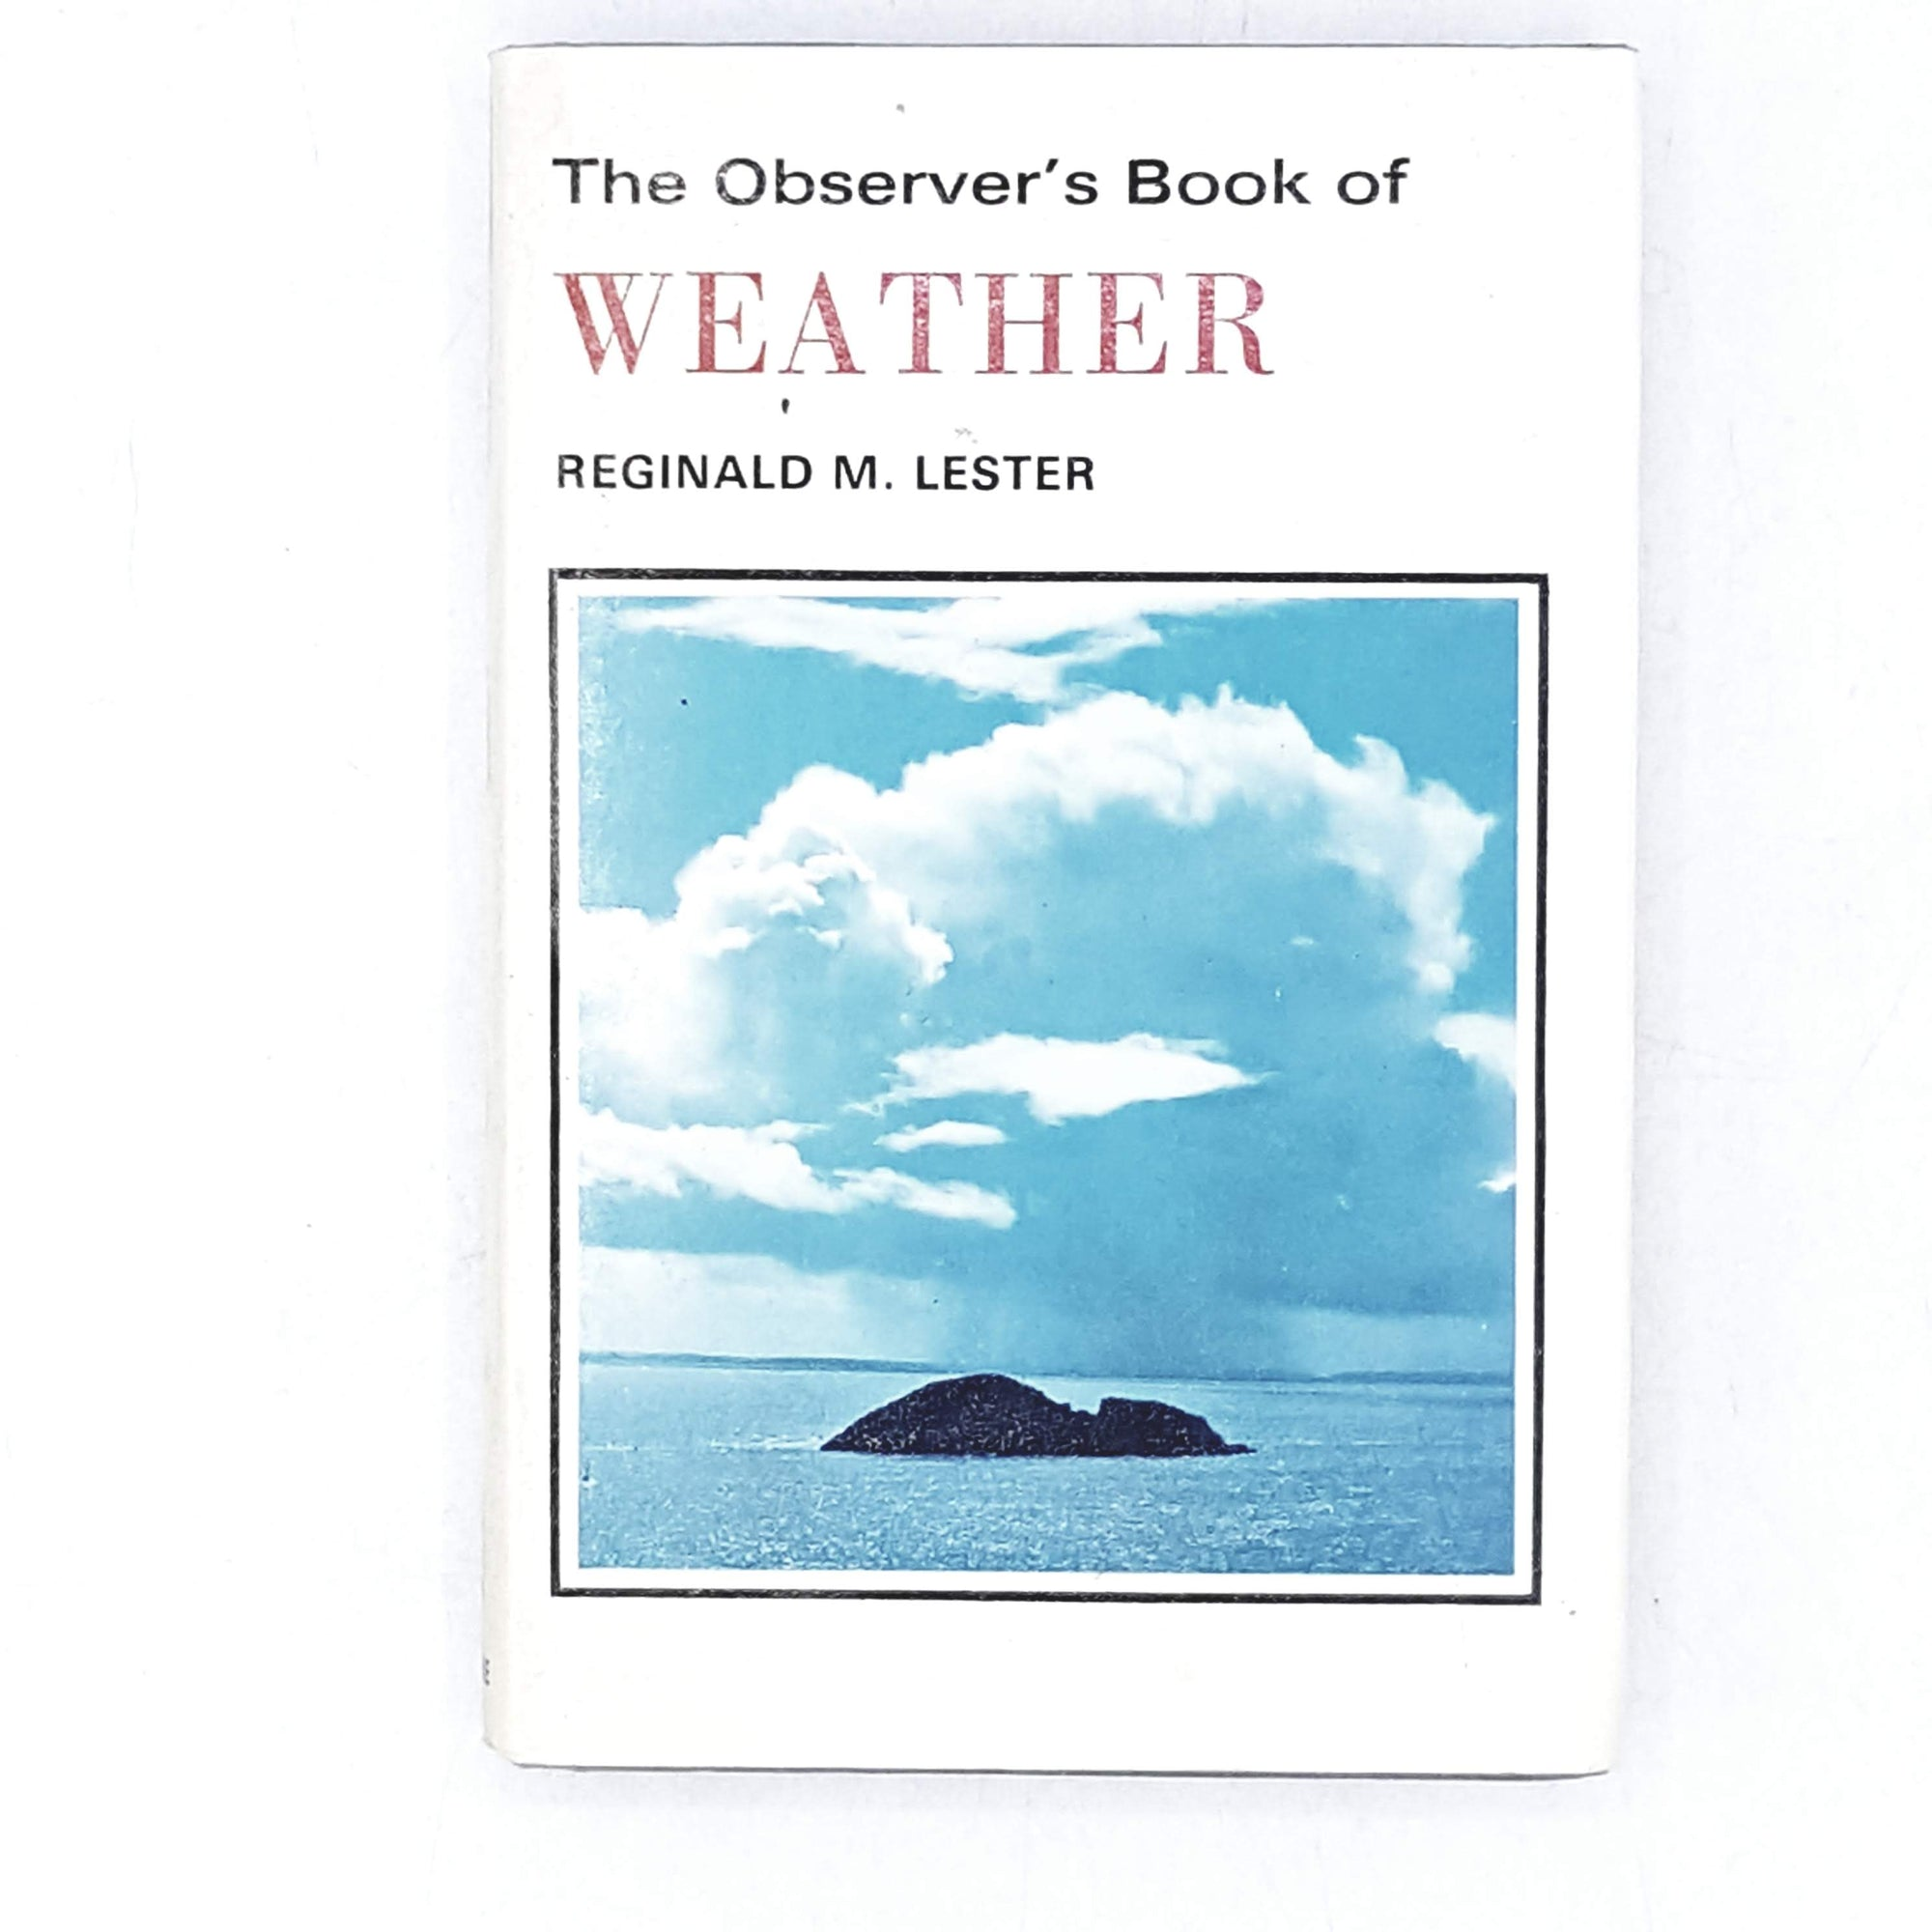 The Observer's Book of Weather by Reginald M. Lester 1975